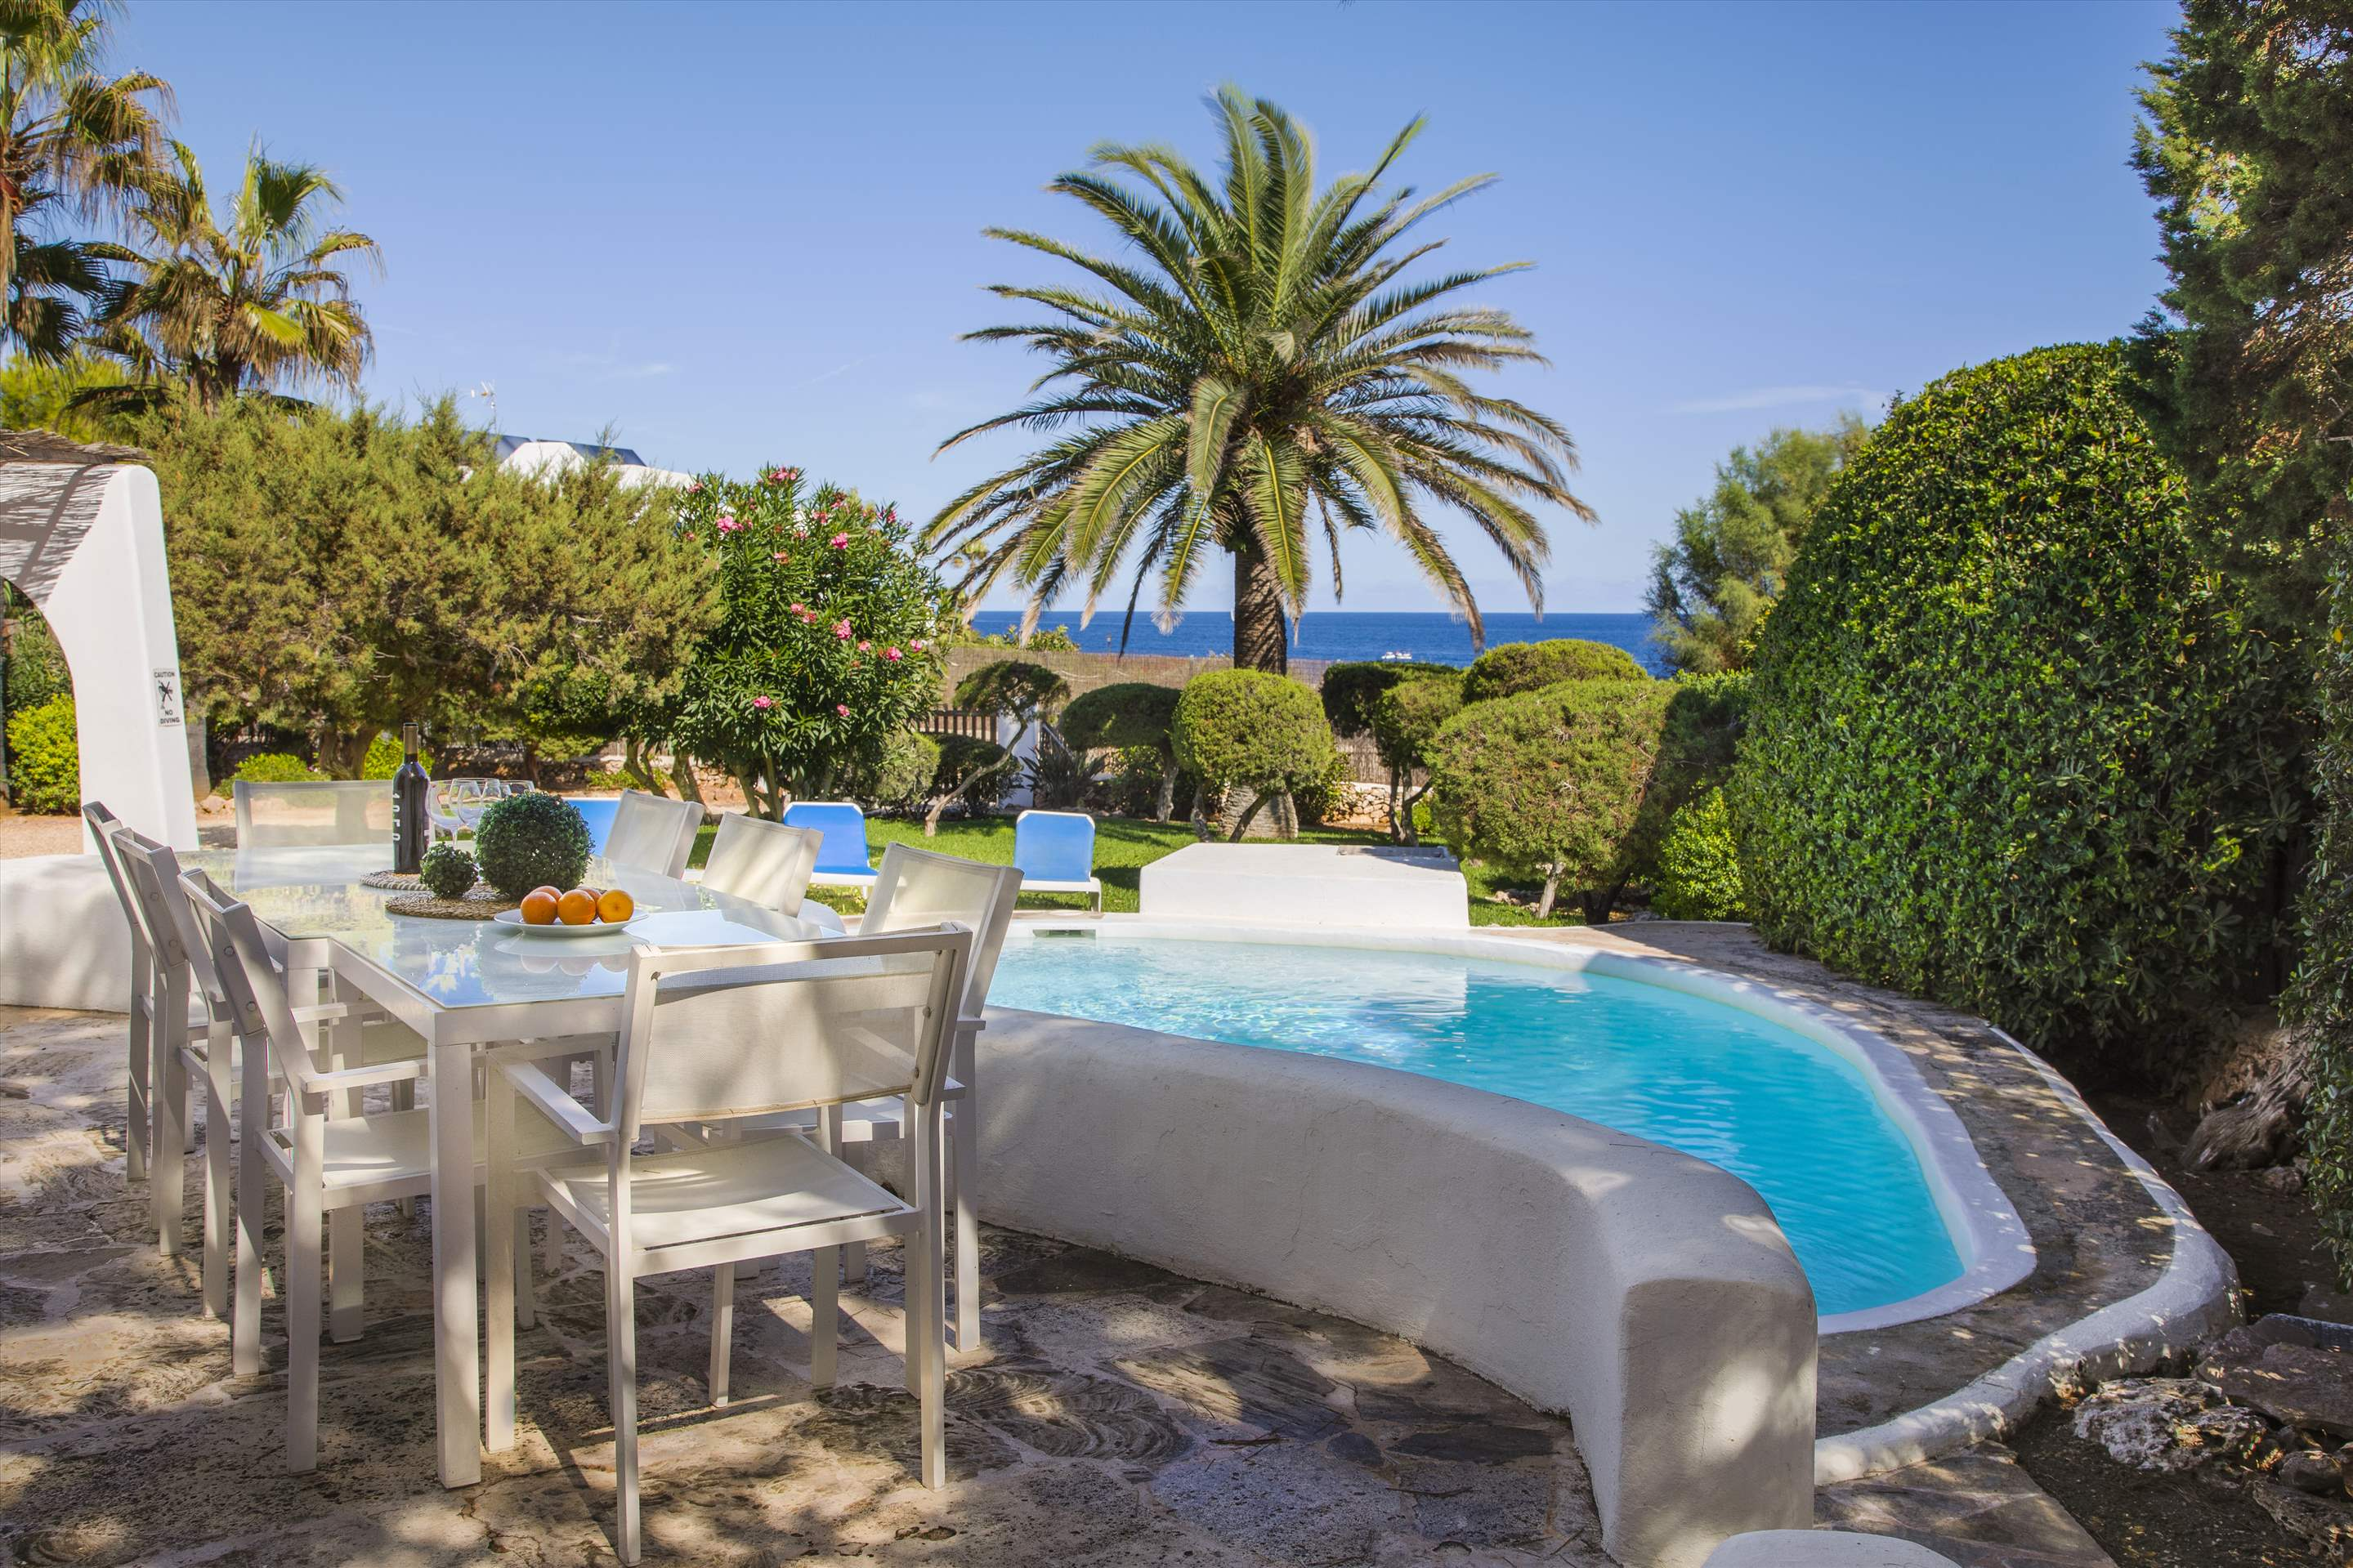 Mar Gran, 4 bedroom villa in Cala d'Or , Majorca Photo #2